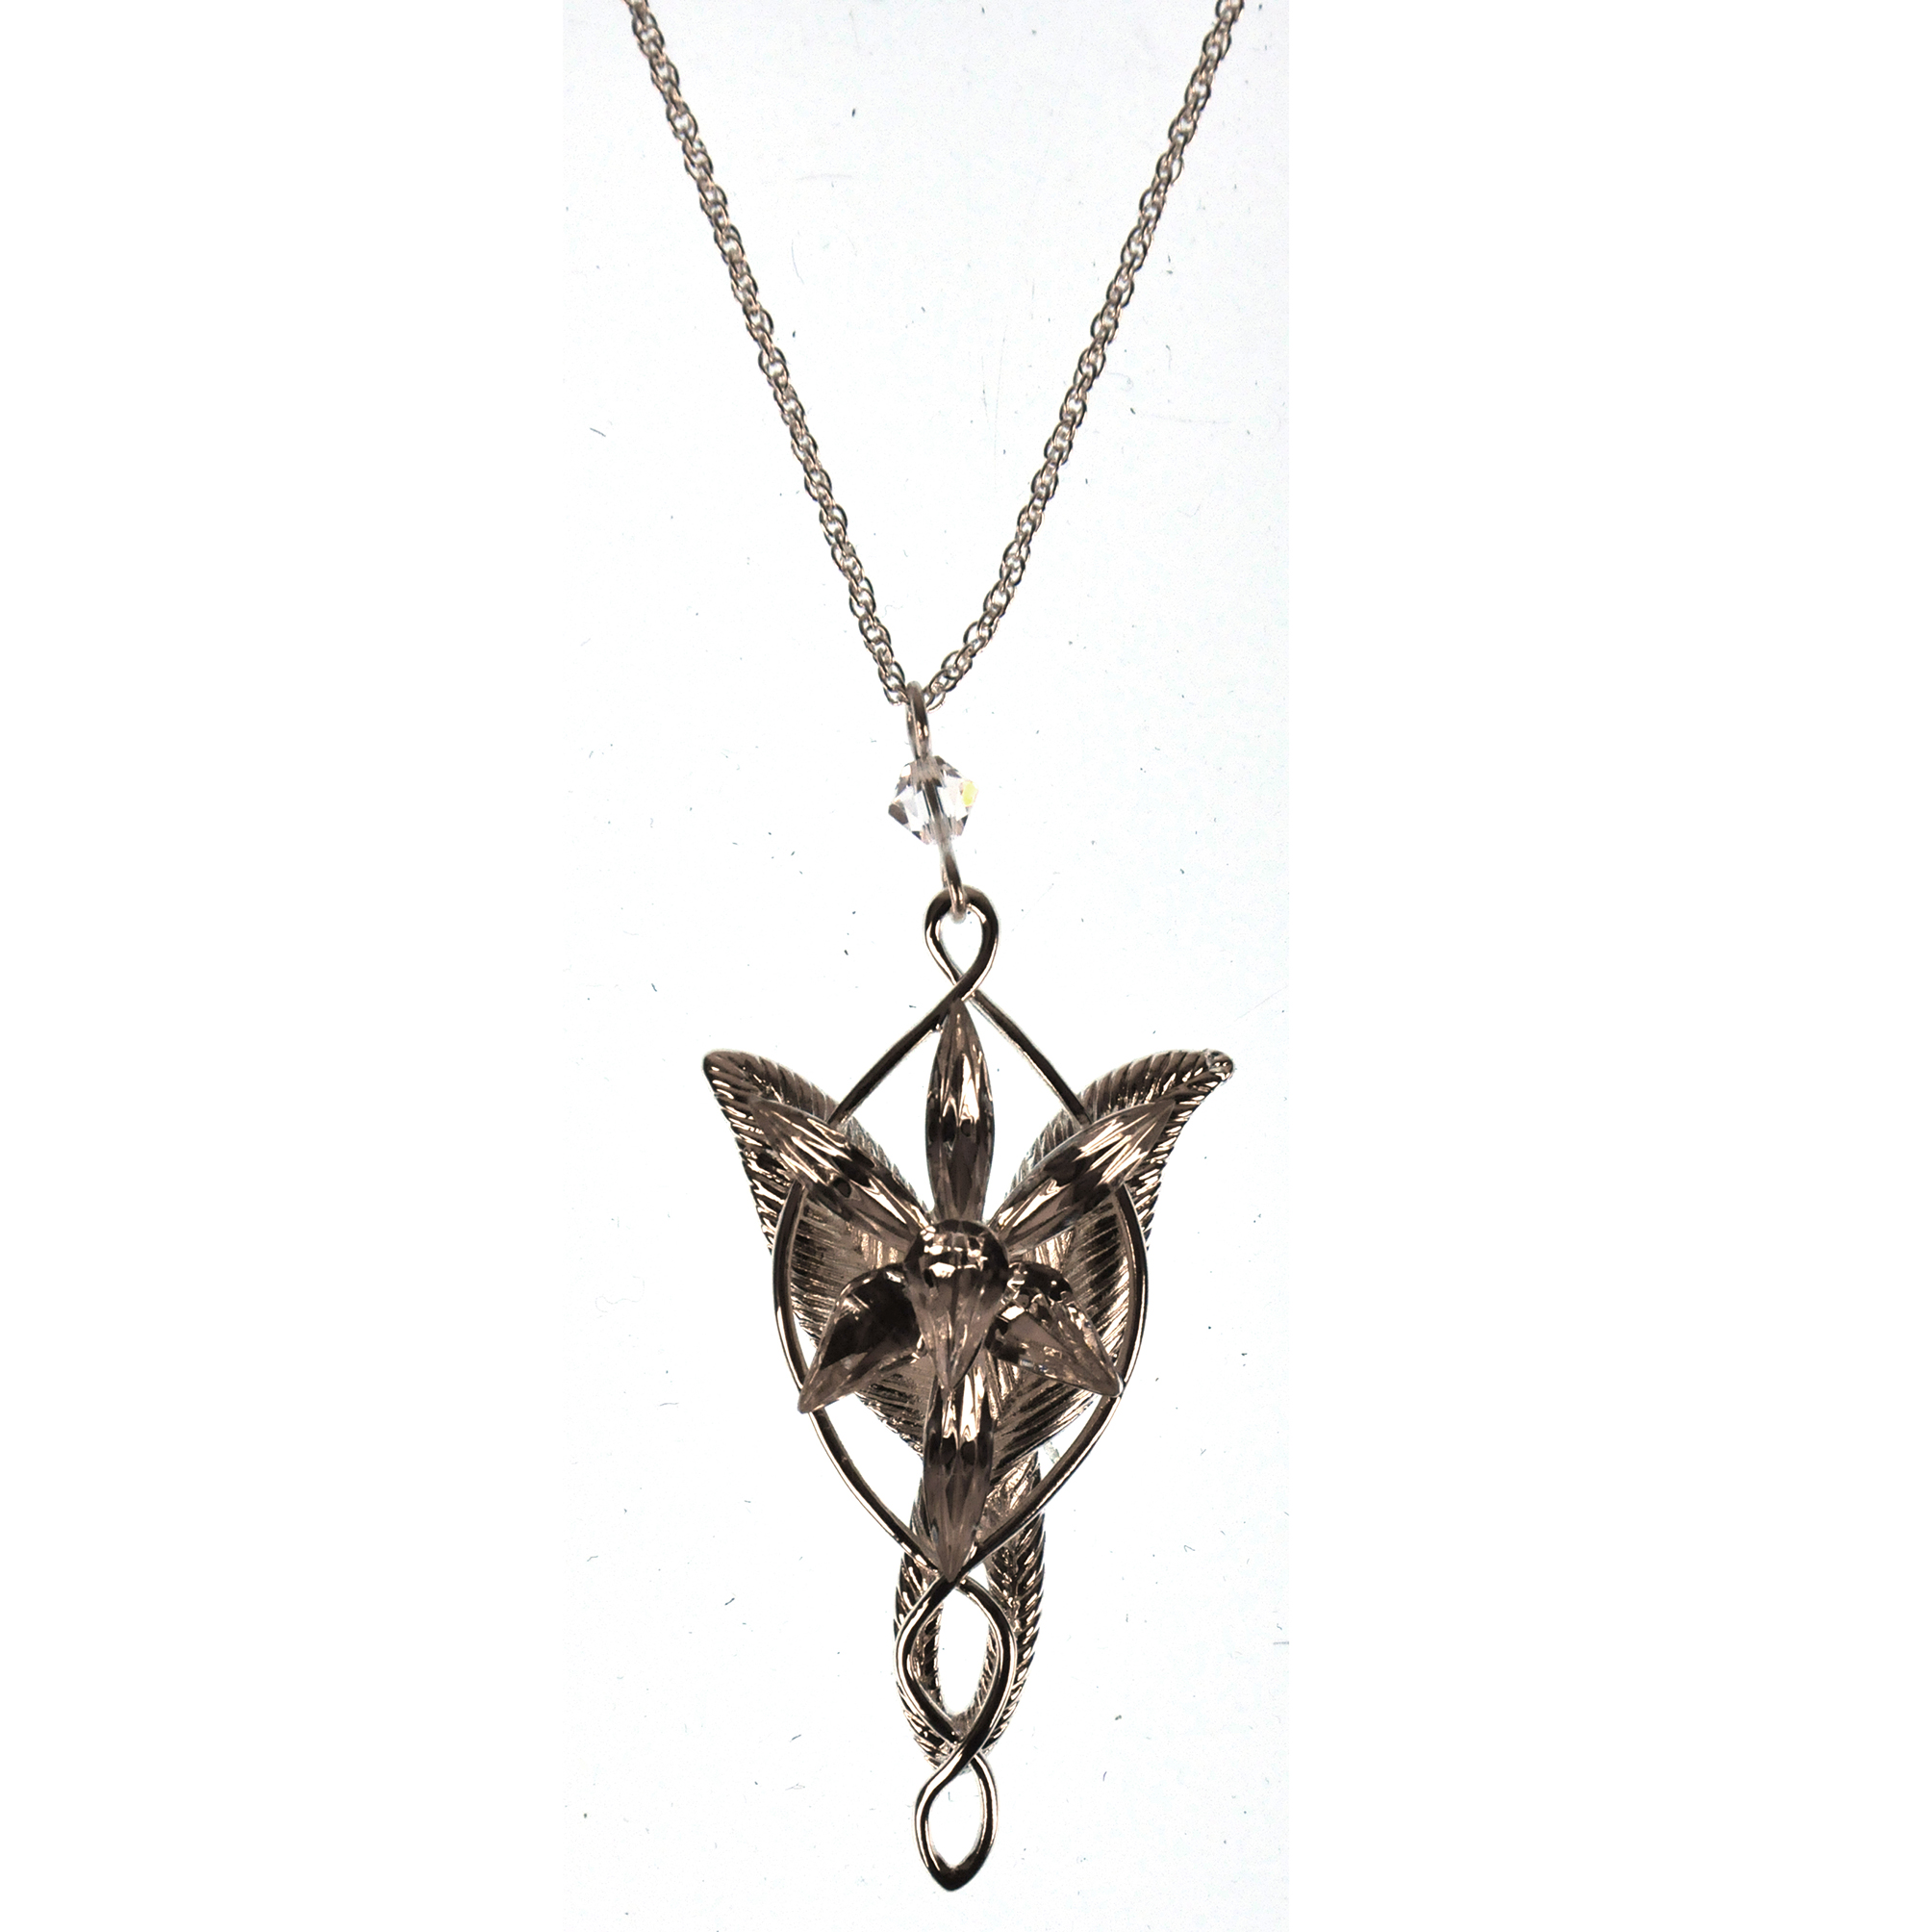 708d819e264 Details about Arwen Evenstar Pendant - Lord of the Rings Replica by Noble  Collection